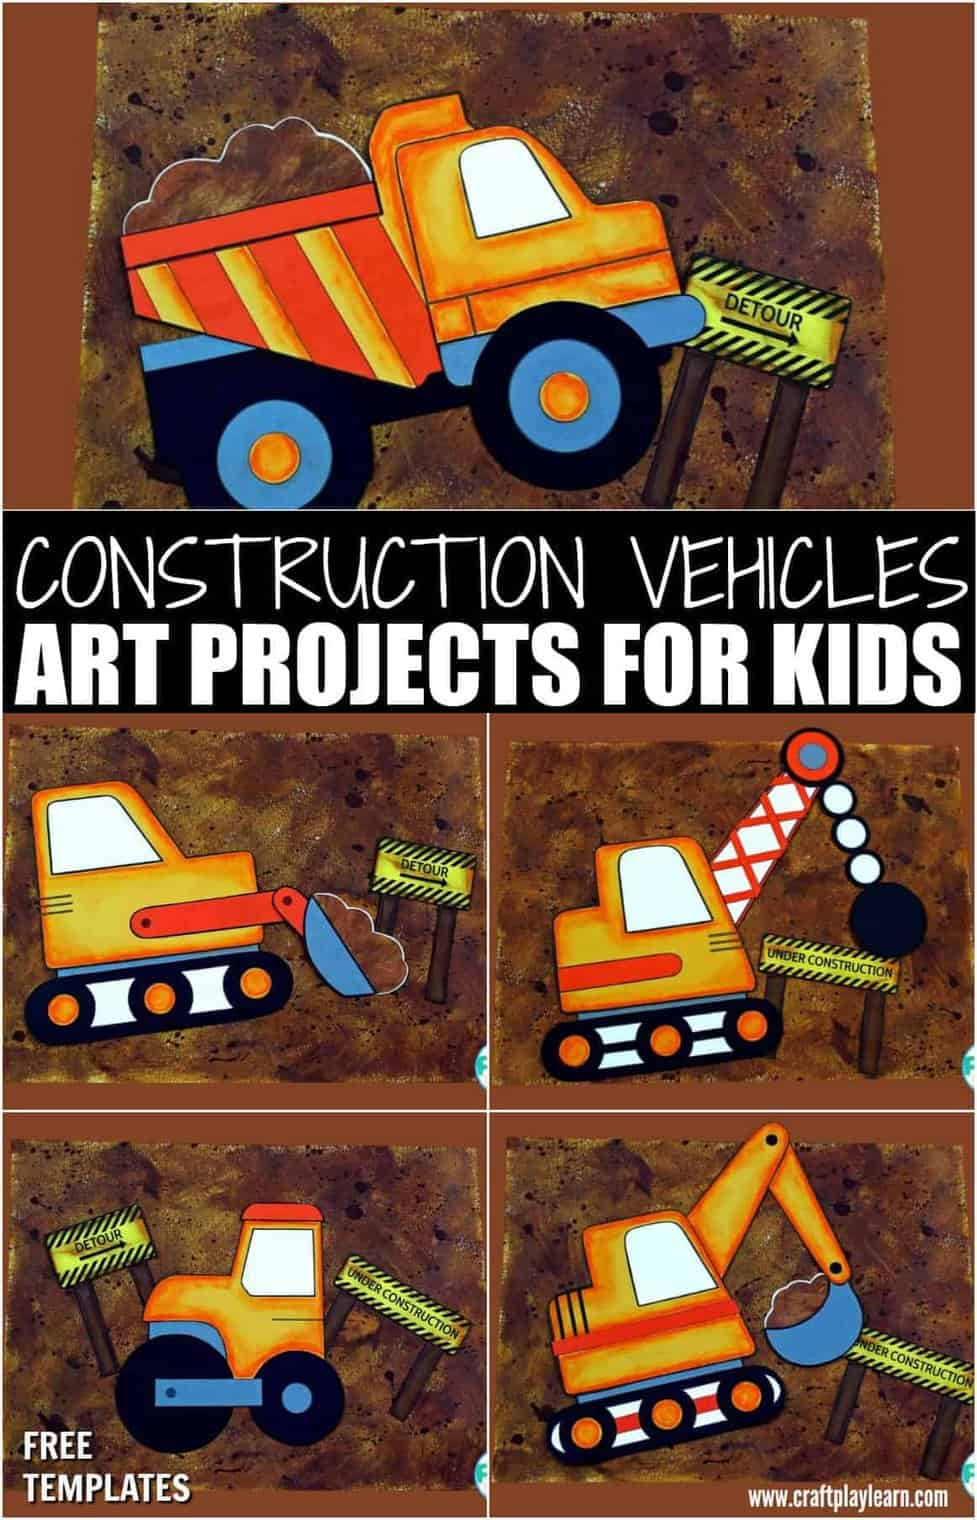 Construction Vehicles Art Projects For Kids Craft Play Learn